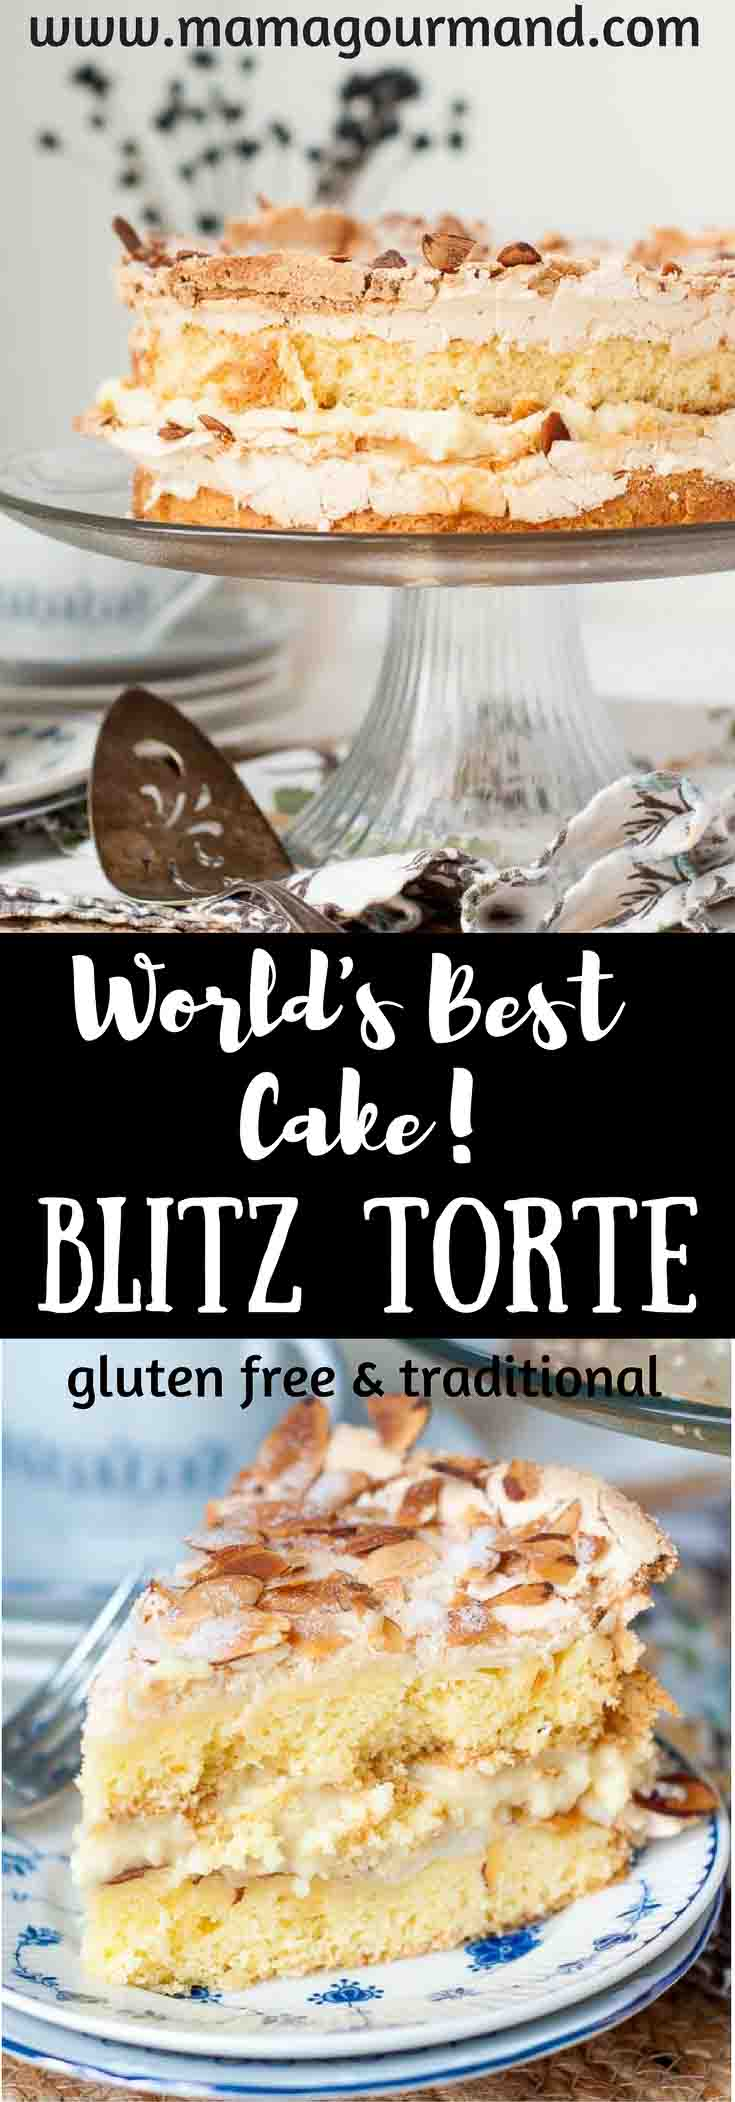 World's Best Blitz Torte is an explosion of textures and tastes with a crunchy, crackling top, chewy, dense cake and a creamy, custard vanilla filling. https://www.mamagourmand.com